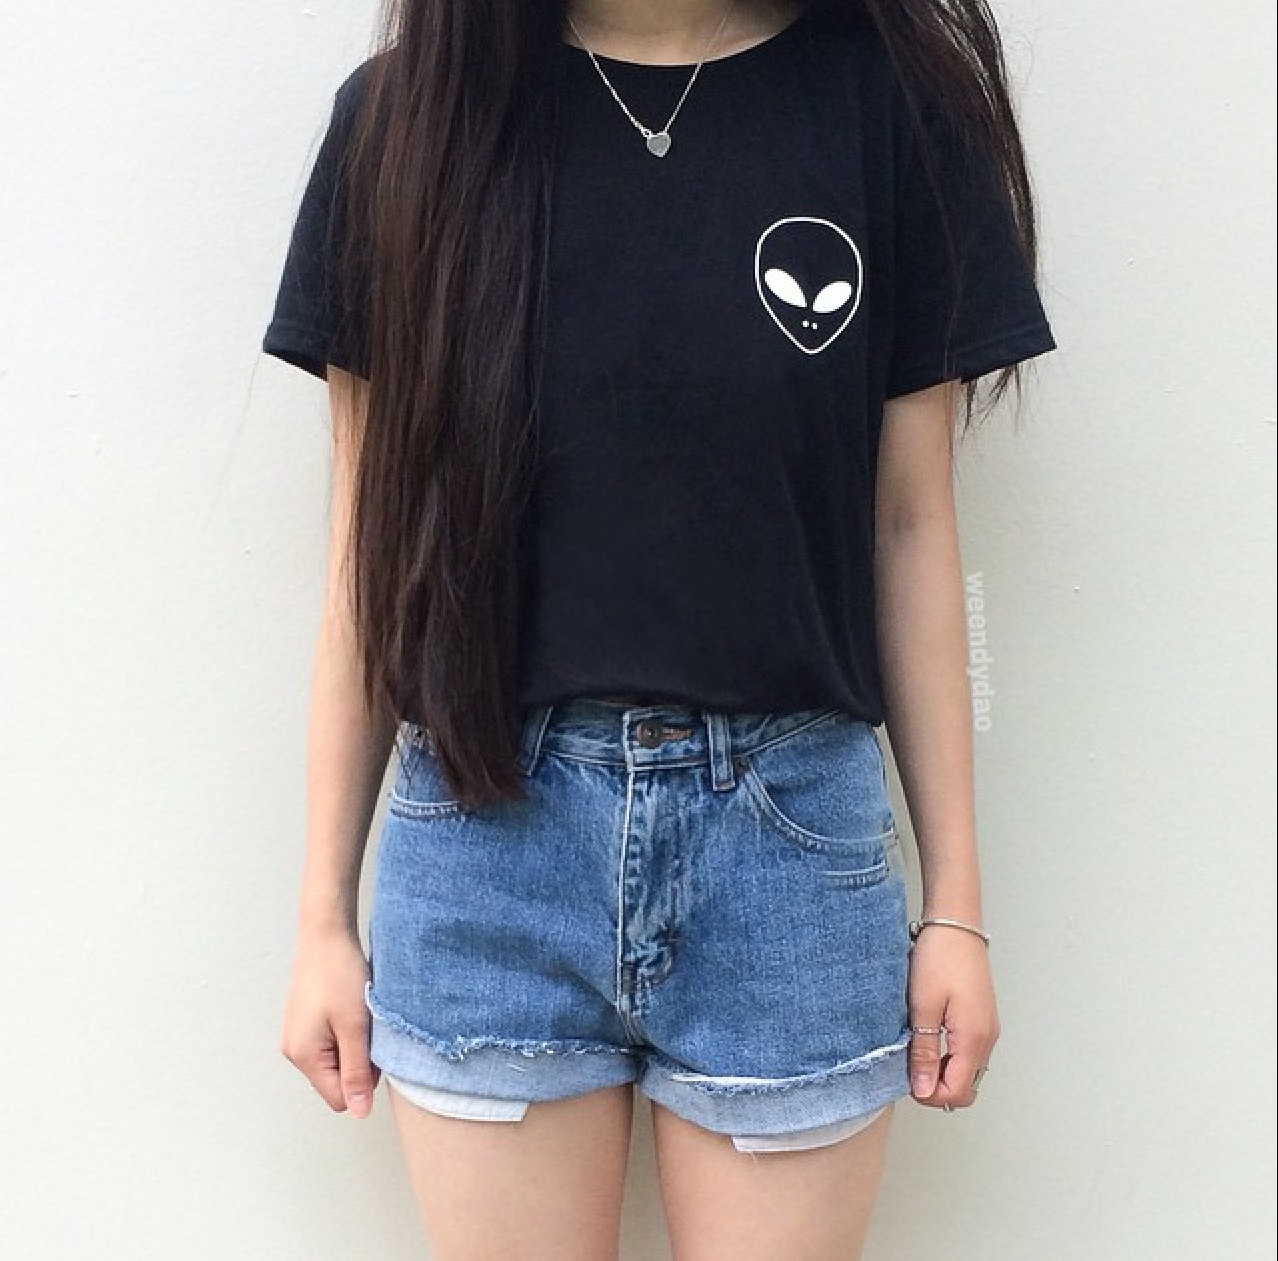 Black t shirt outfit tumblr - Alien Shirt Pocket Tee Tumblr Pocket Left Patch Shirt Also Available On A Sweatshirt